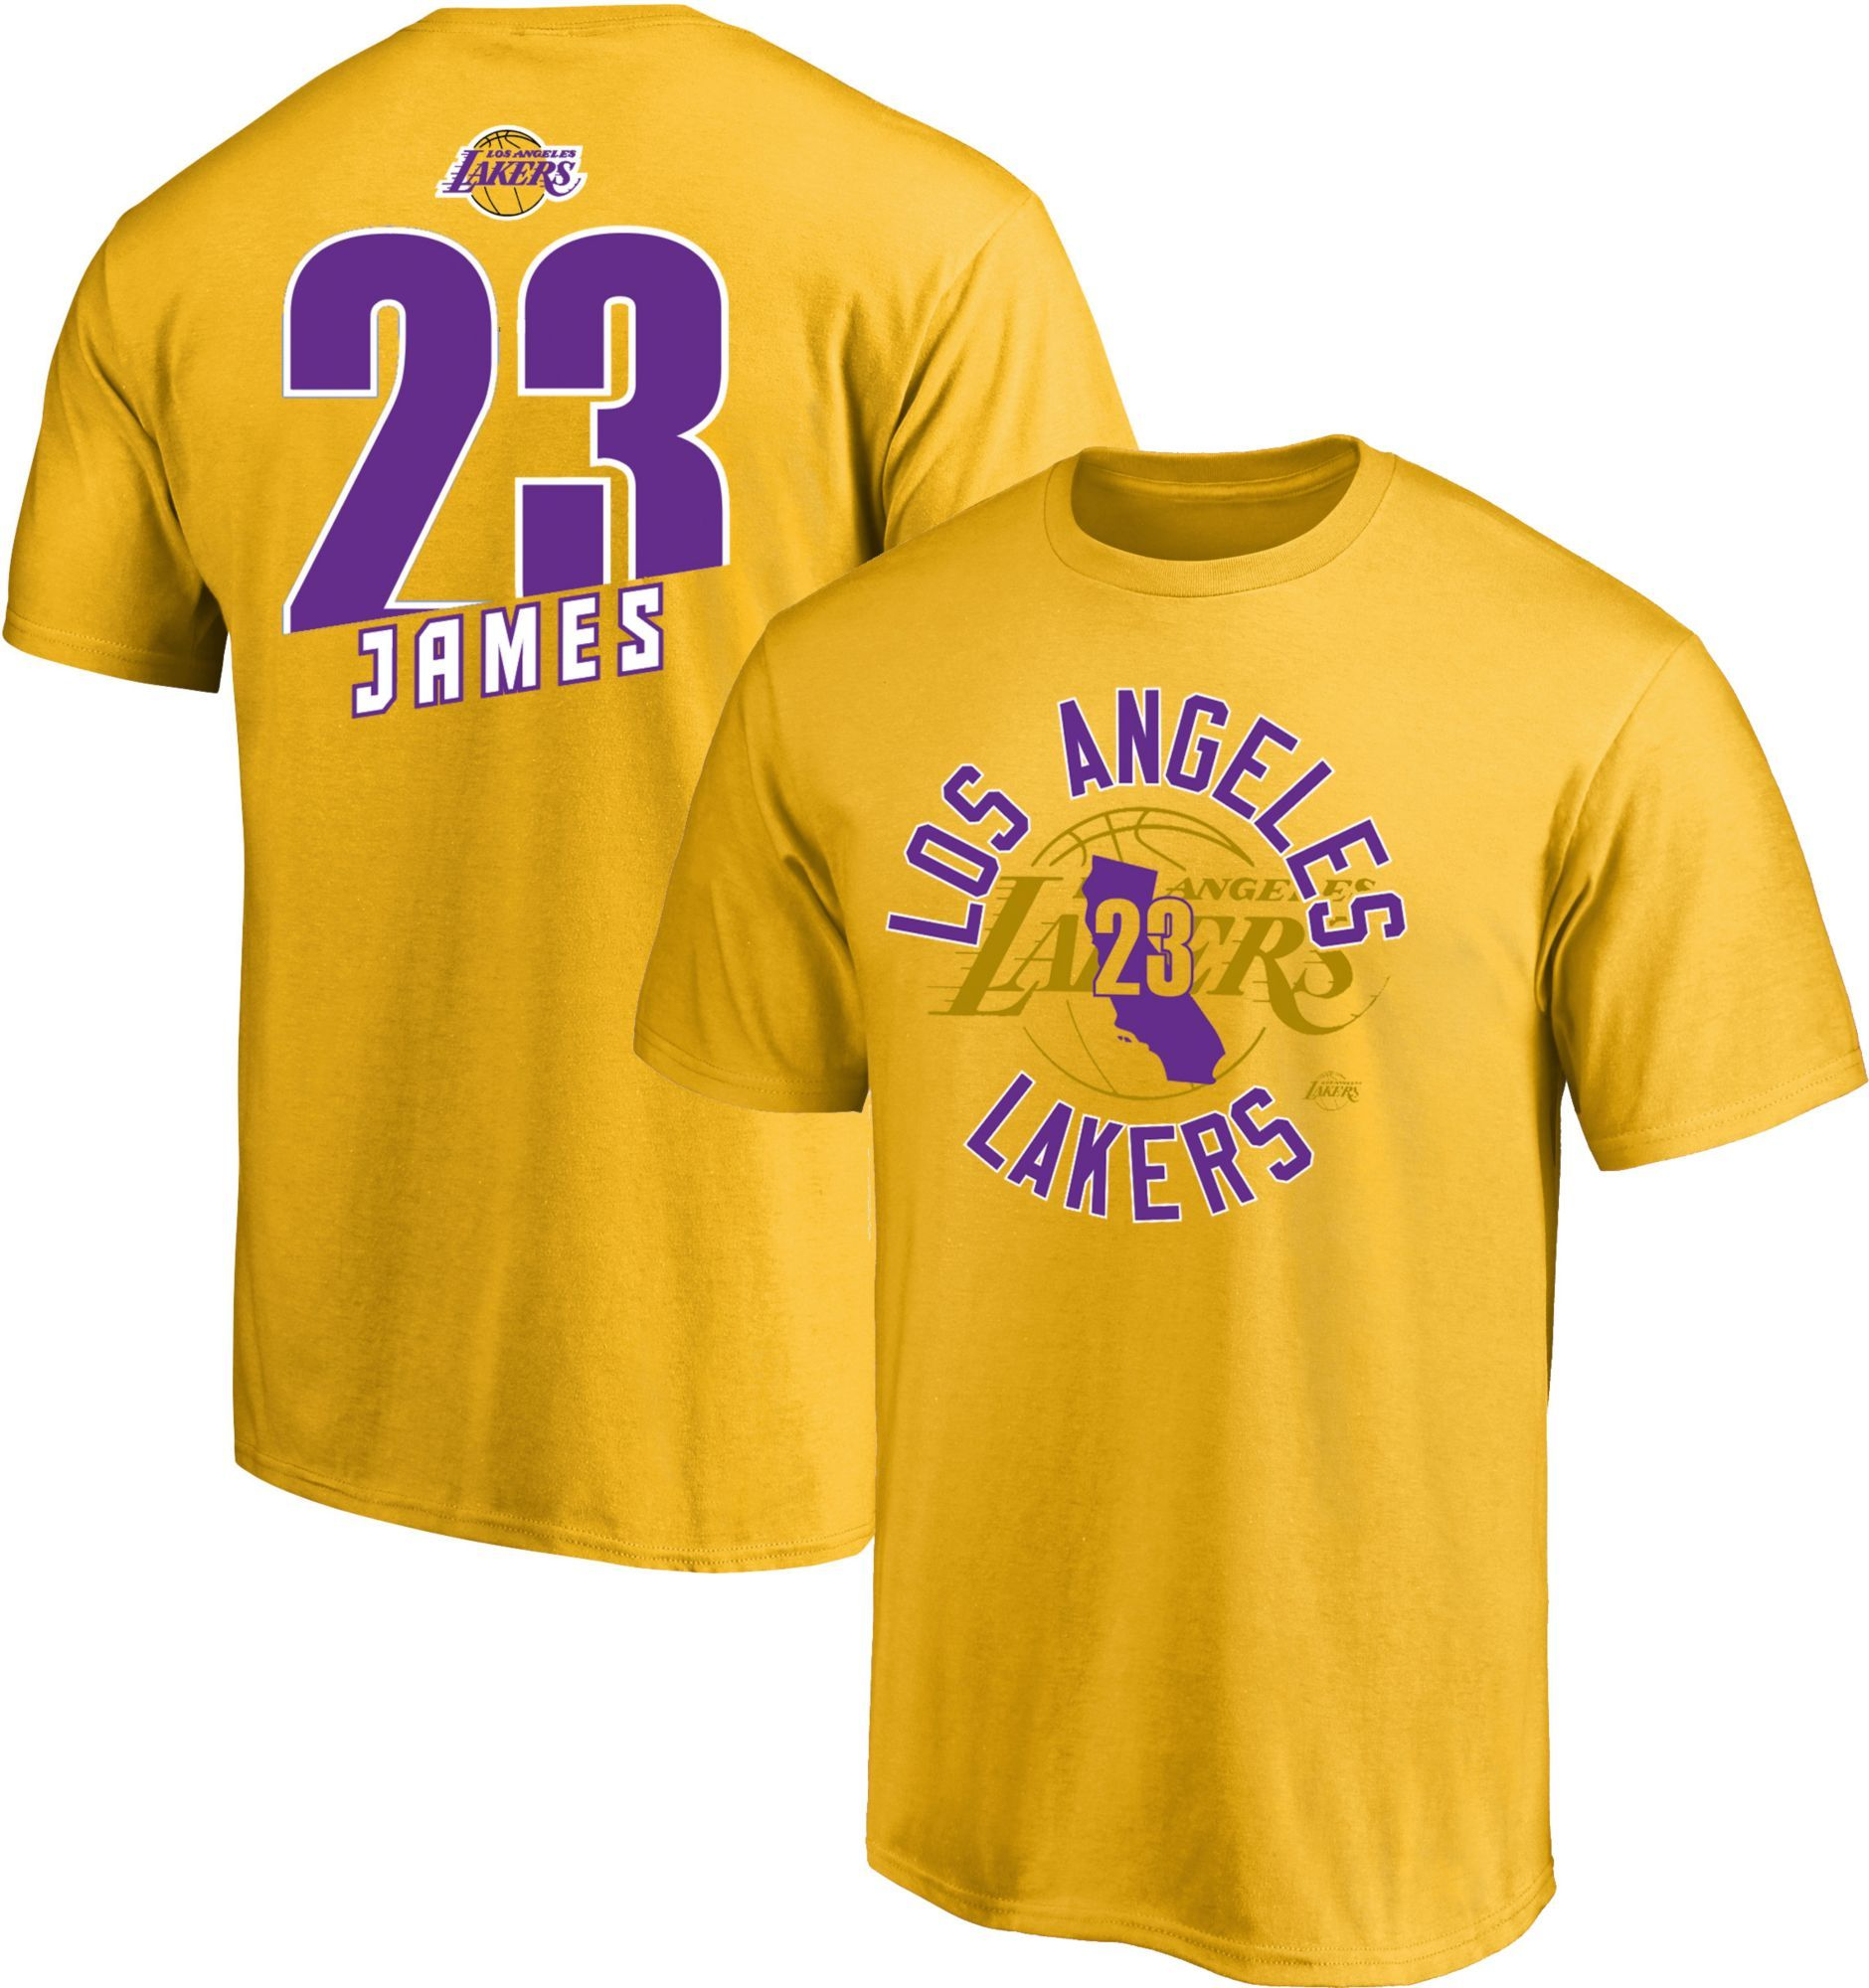 best website ec33c 1c68f Majestic Men's Los Angeles Lakers LeBron James #23 Gold T ...